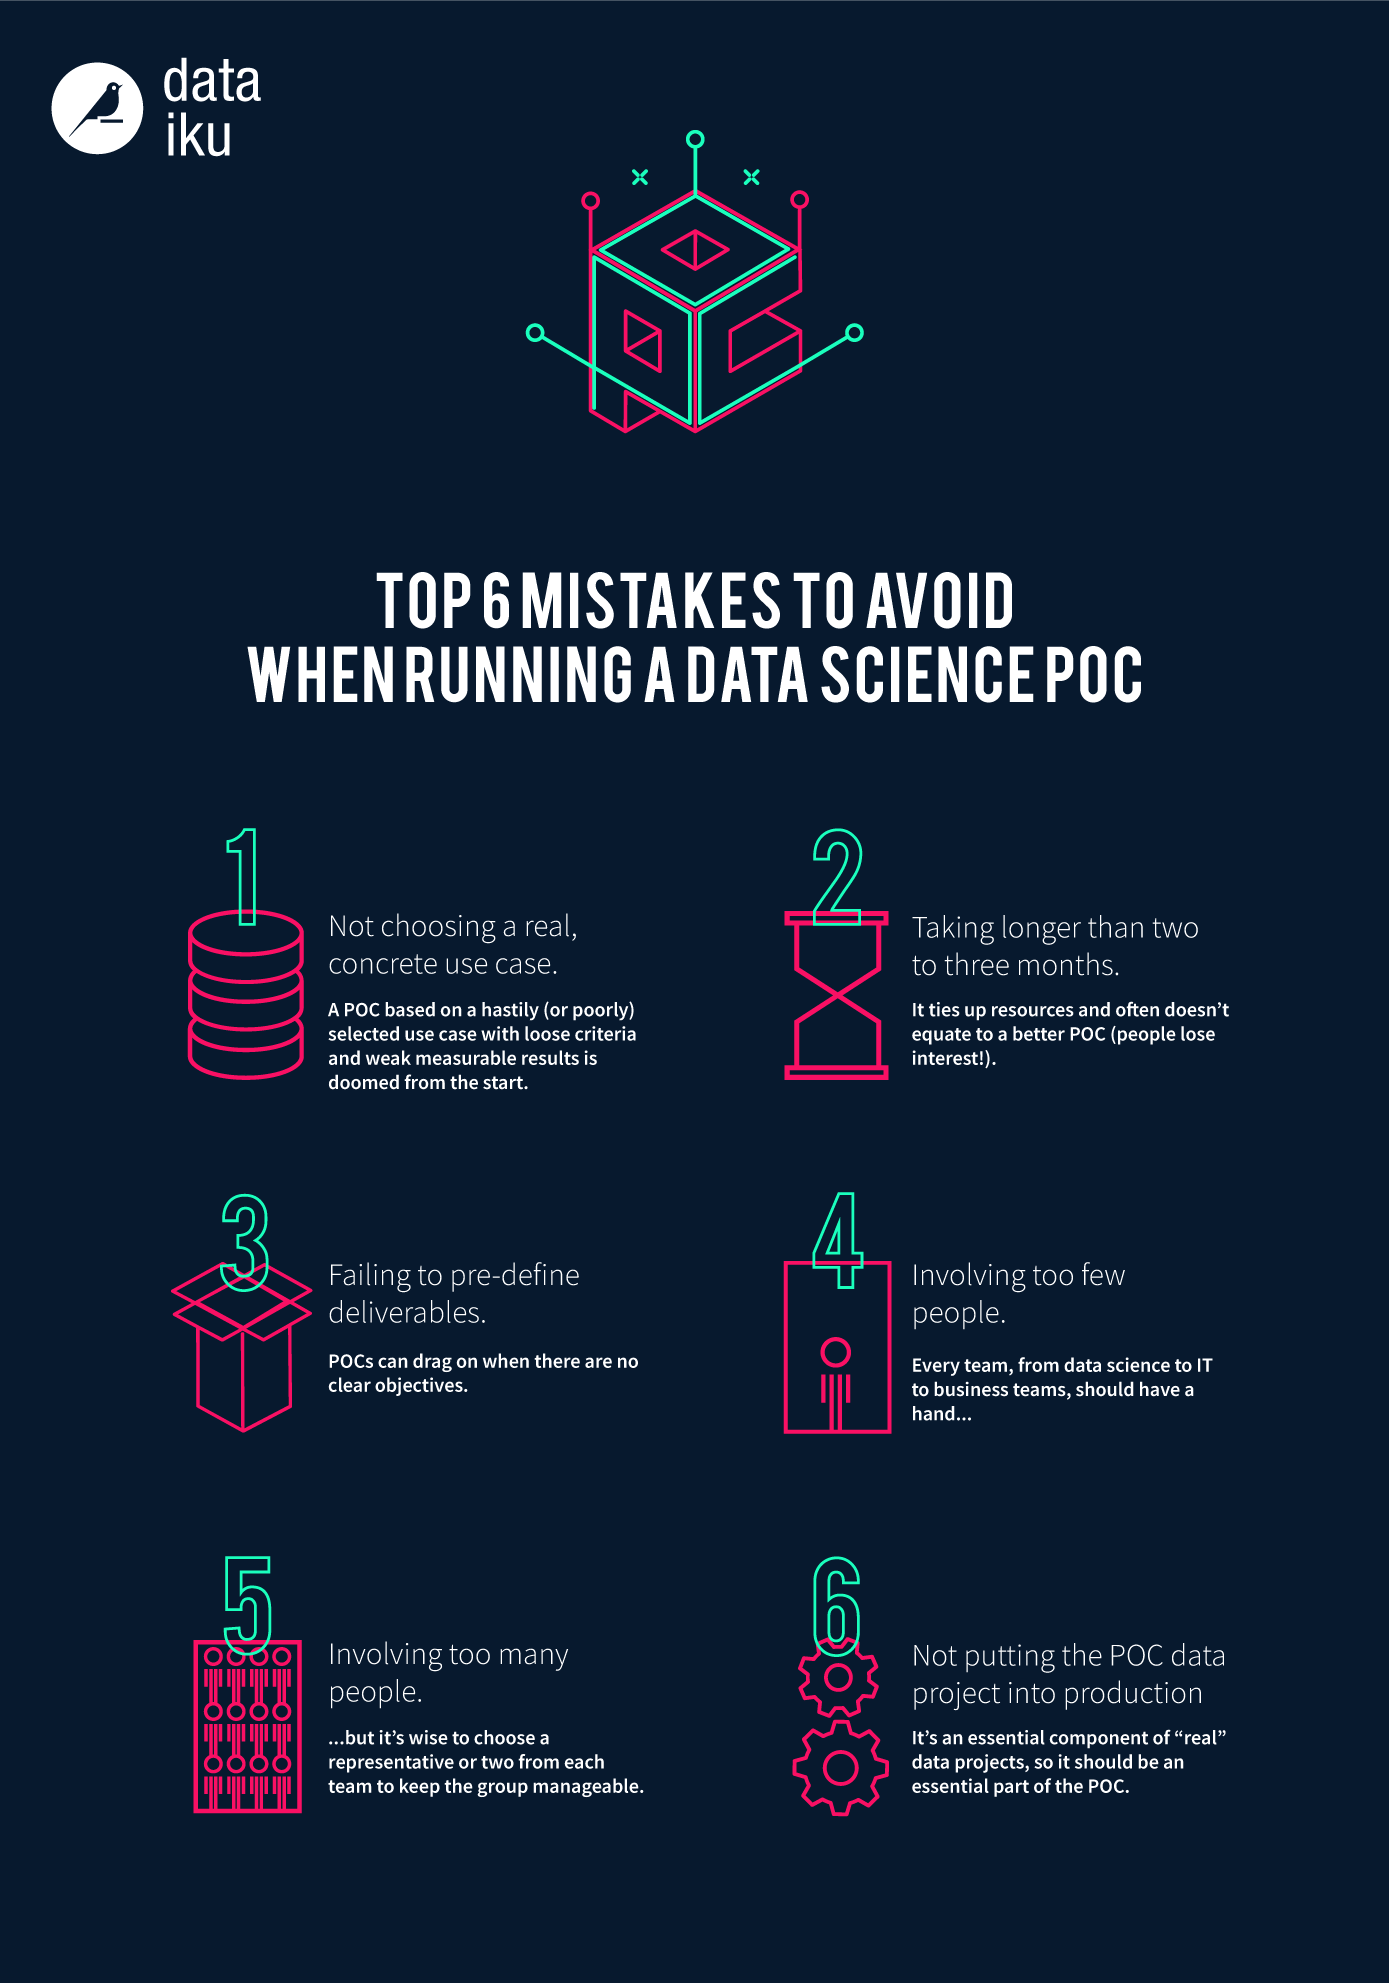 Dataiku infographic on top 6 mistakes to avoid when running a data science proof of concept (POC)